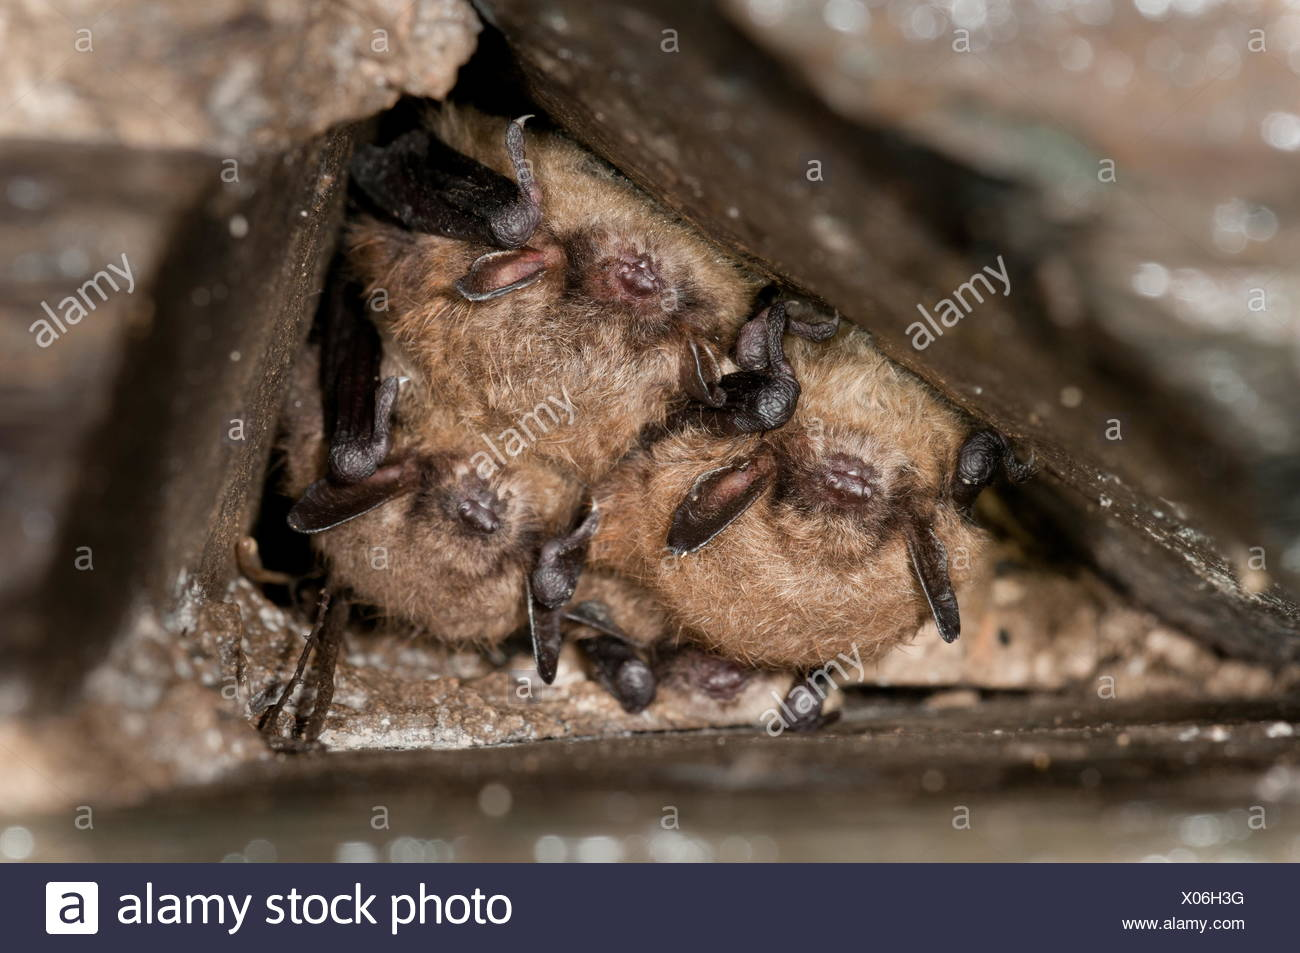 1 daubenton (above) and two Brandt's bats. Myotis brandtii is a species of vesper bat in the family Vespertilionidae. It is found throughout most of Europe and parts of Asia. It is known for its extreme longevity quotient, approximately twice that of humans. - Stock Image